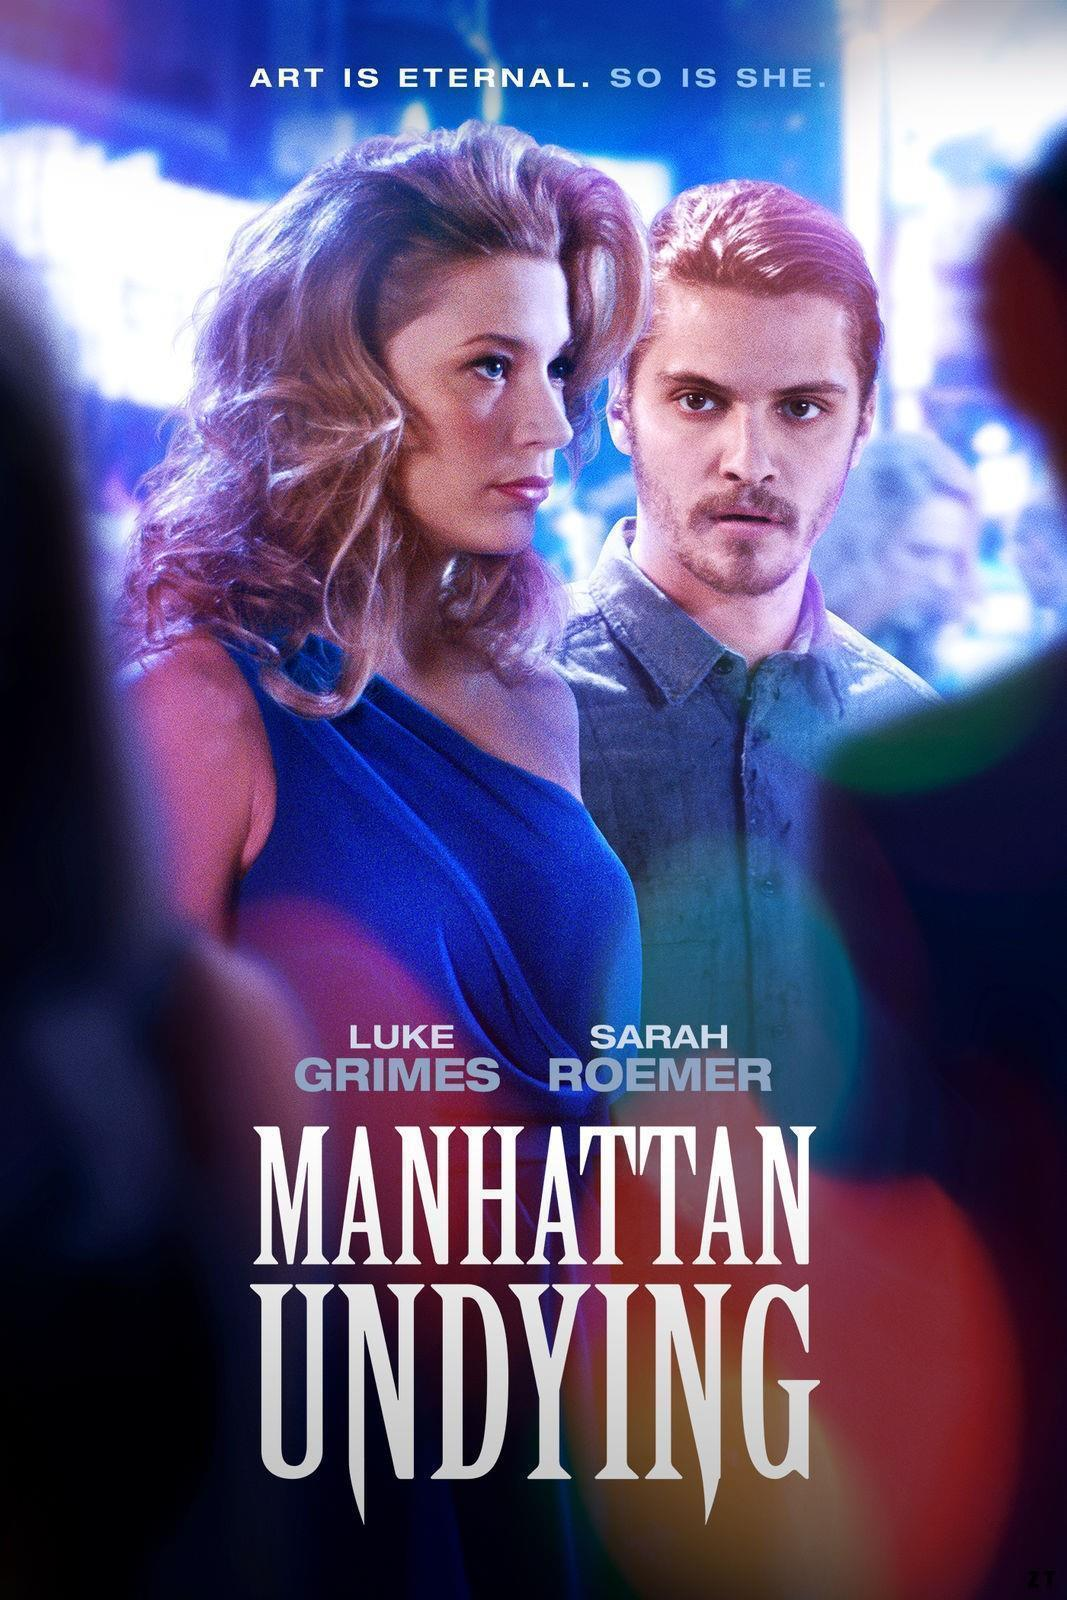 telecharger Manhattan Undying 2017 FRENCH 1080p WEB-DL x264-NORRiS torrent9